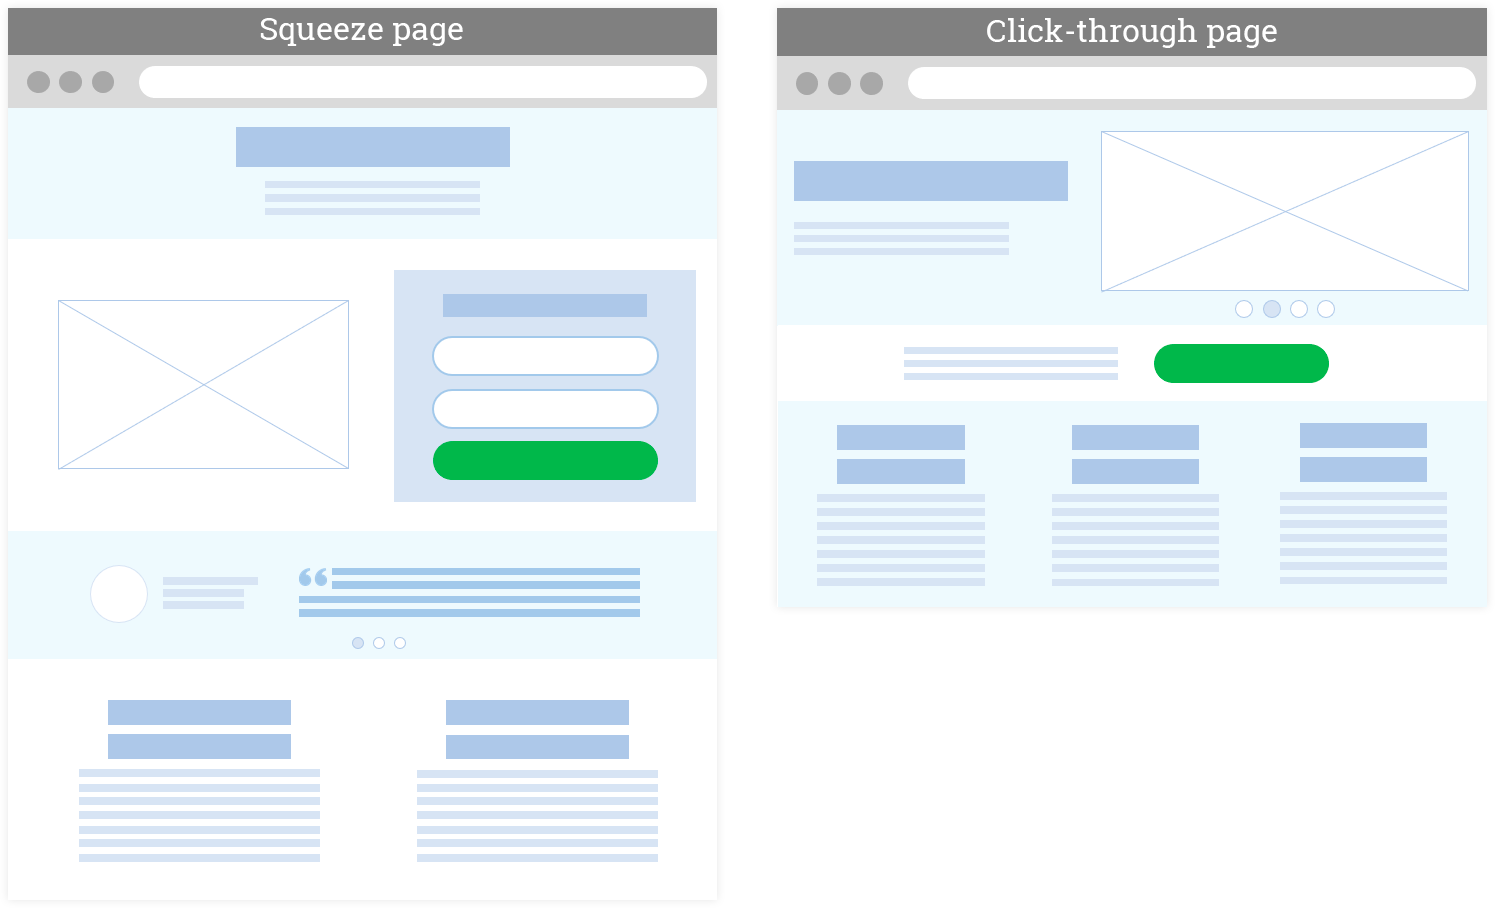 Wireframes squeeze page and click-through page